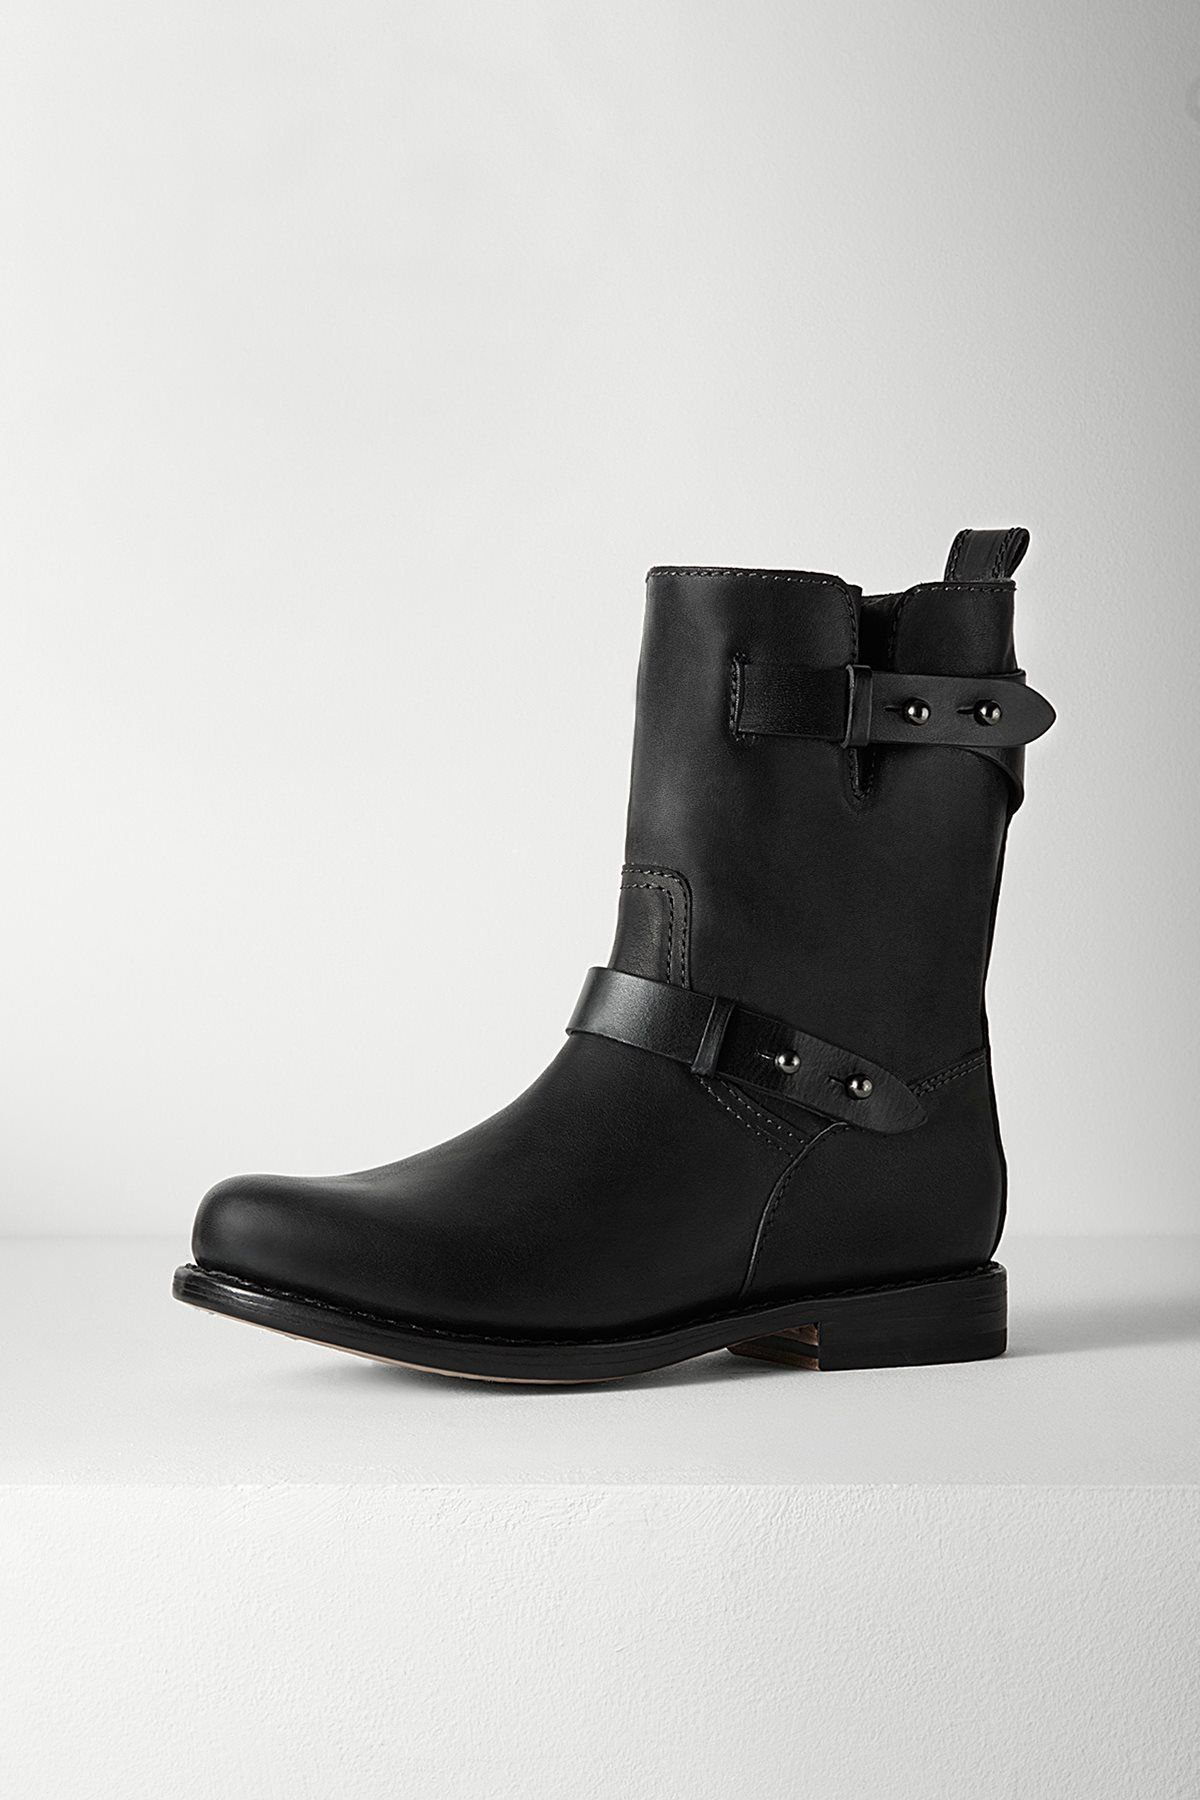 Rag & Bone Moto Boot $595 -- The perfect edgy moto boot with chic black accents are a staple for the colder months.